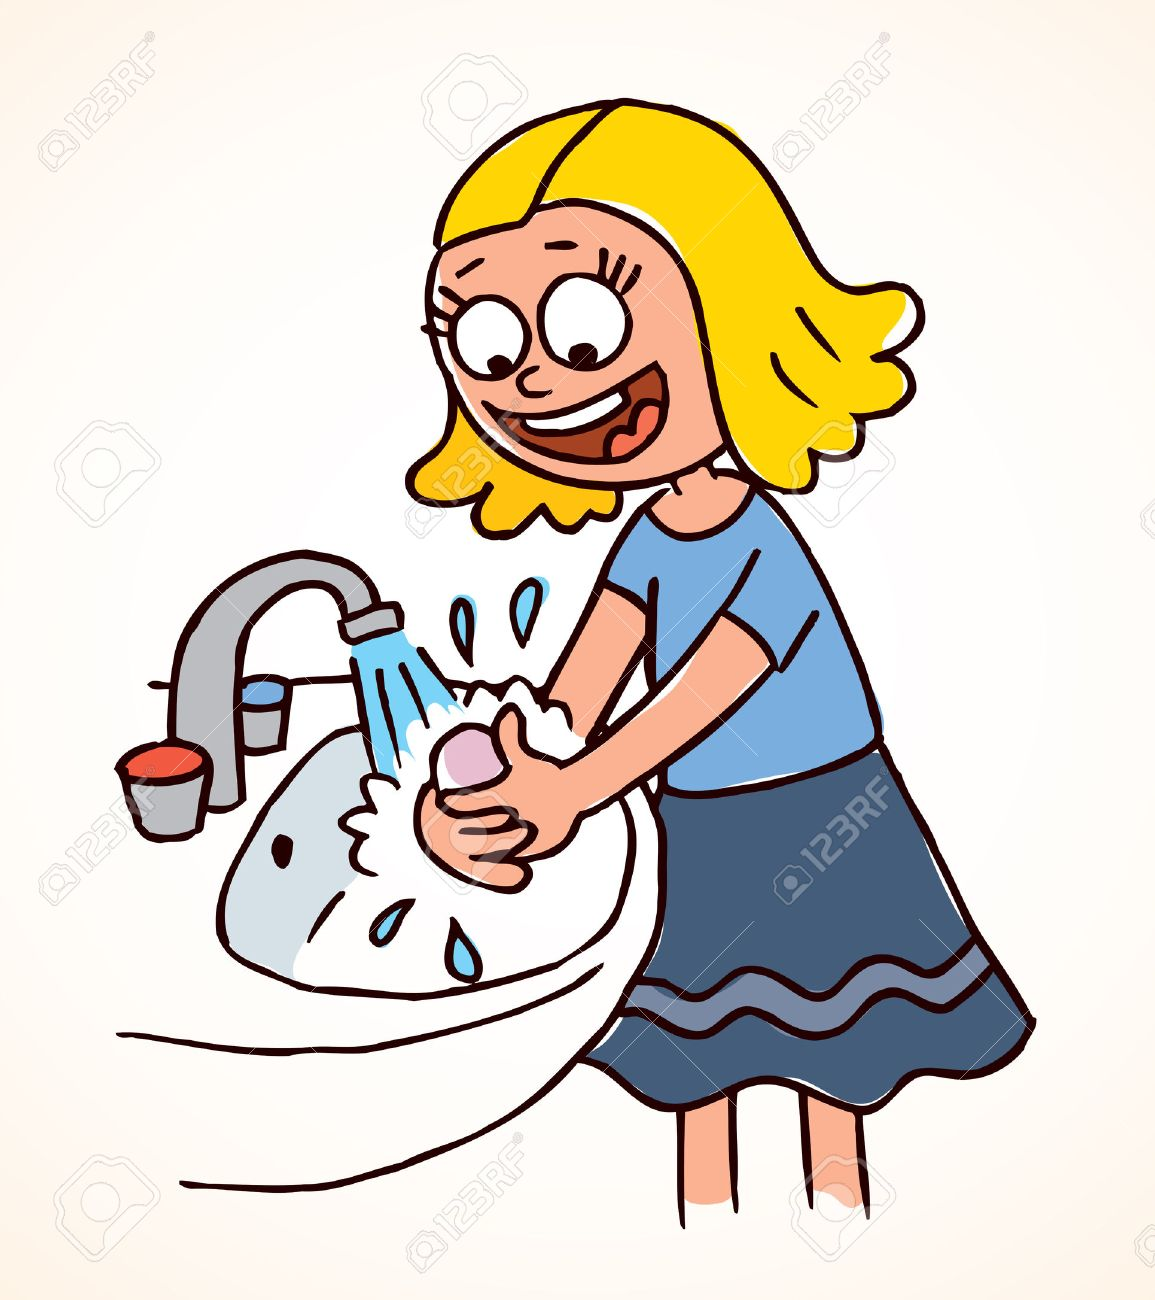 washing hands with soap clipart 2 clipart station rh clipartstation com washing your hands clipart washing hands clip art kids